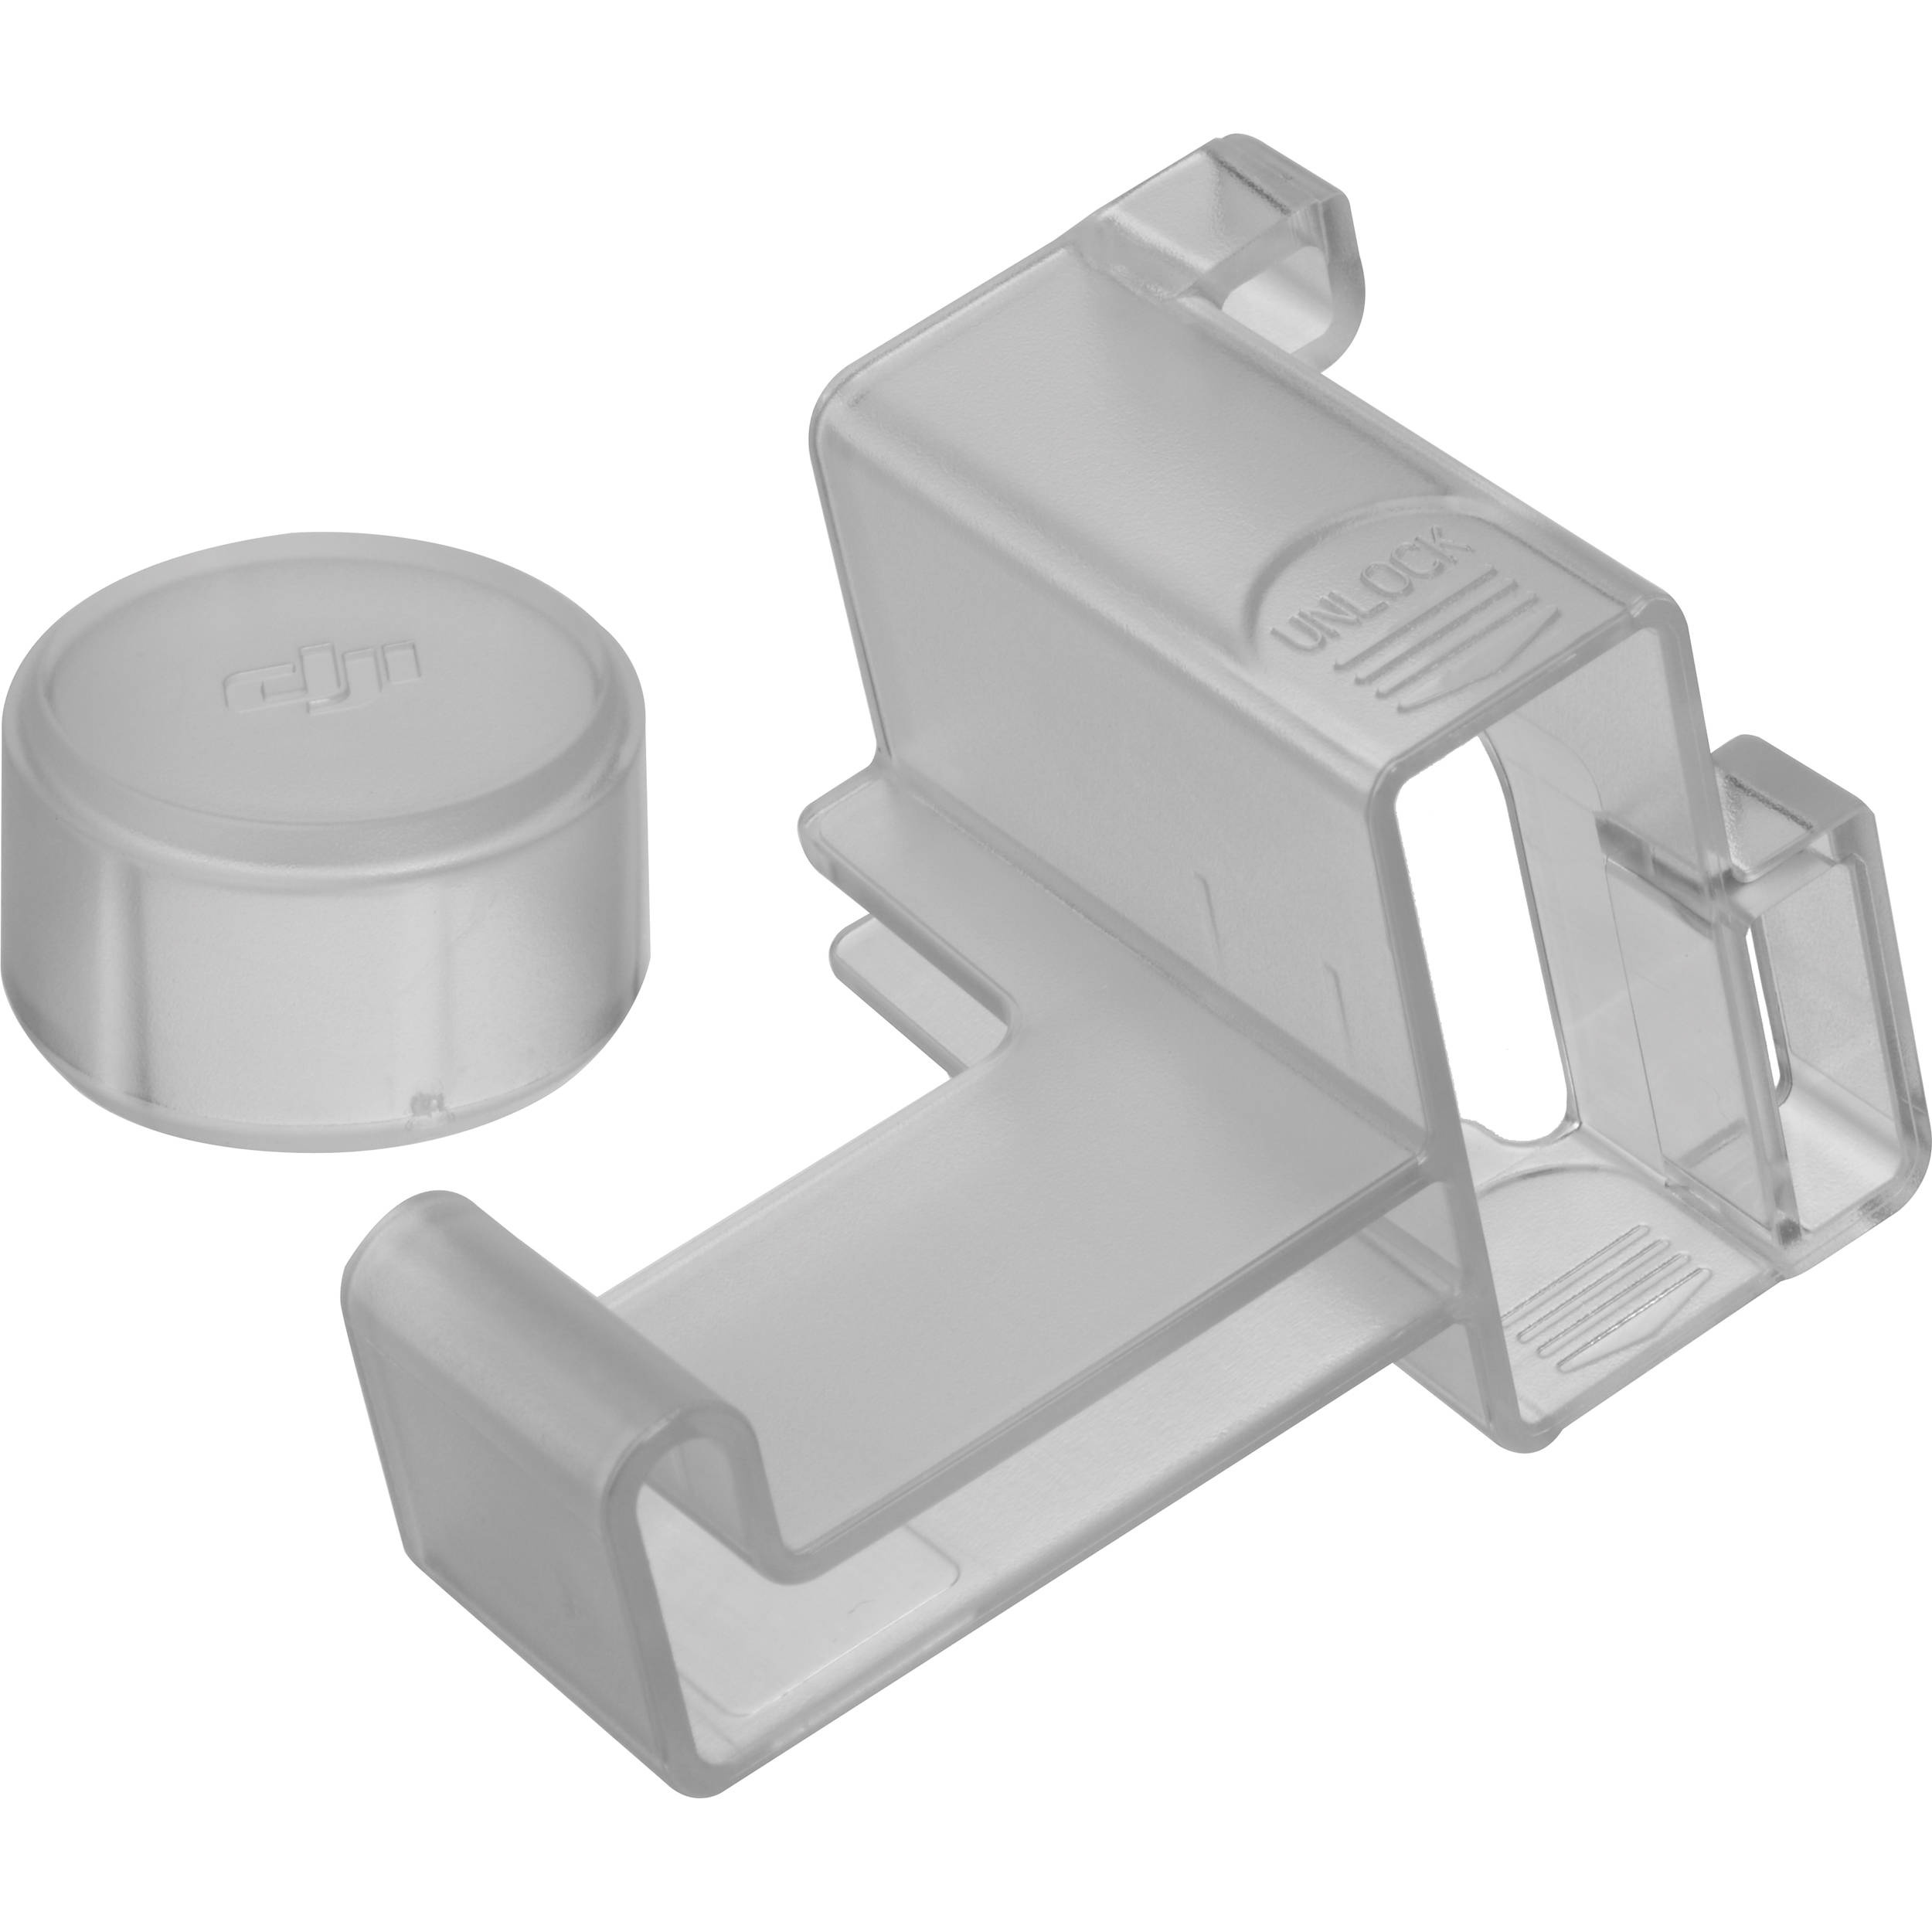 DJI Gimbal Clamp and Camera Cover for Phantom 2 Vision+ (Part 5)